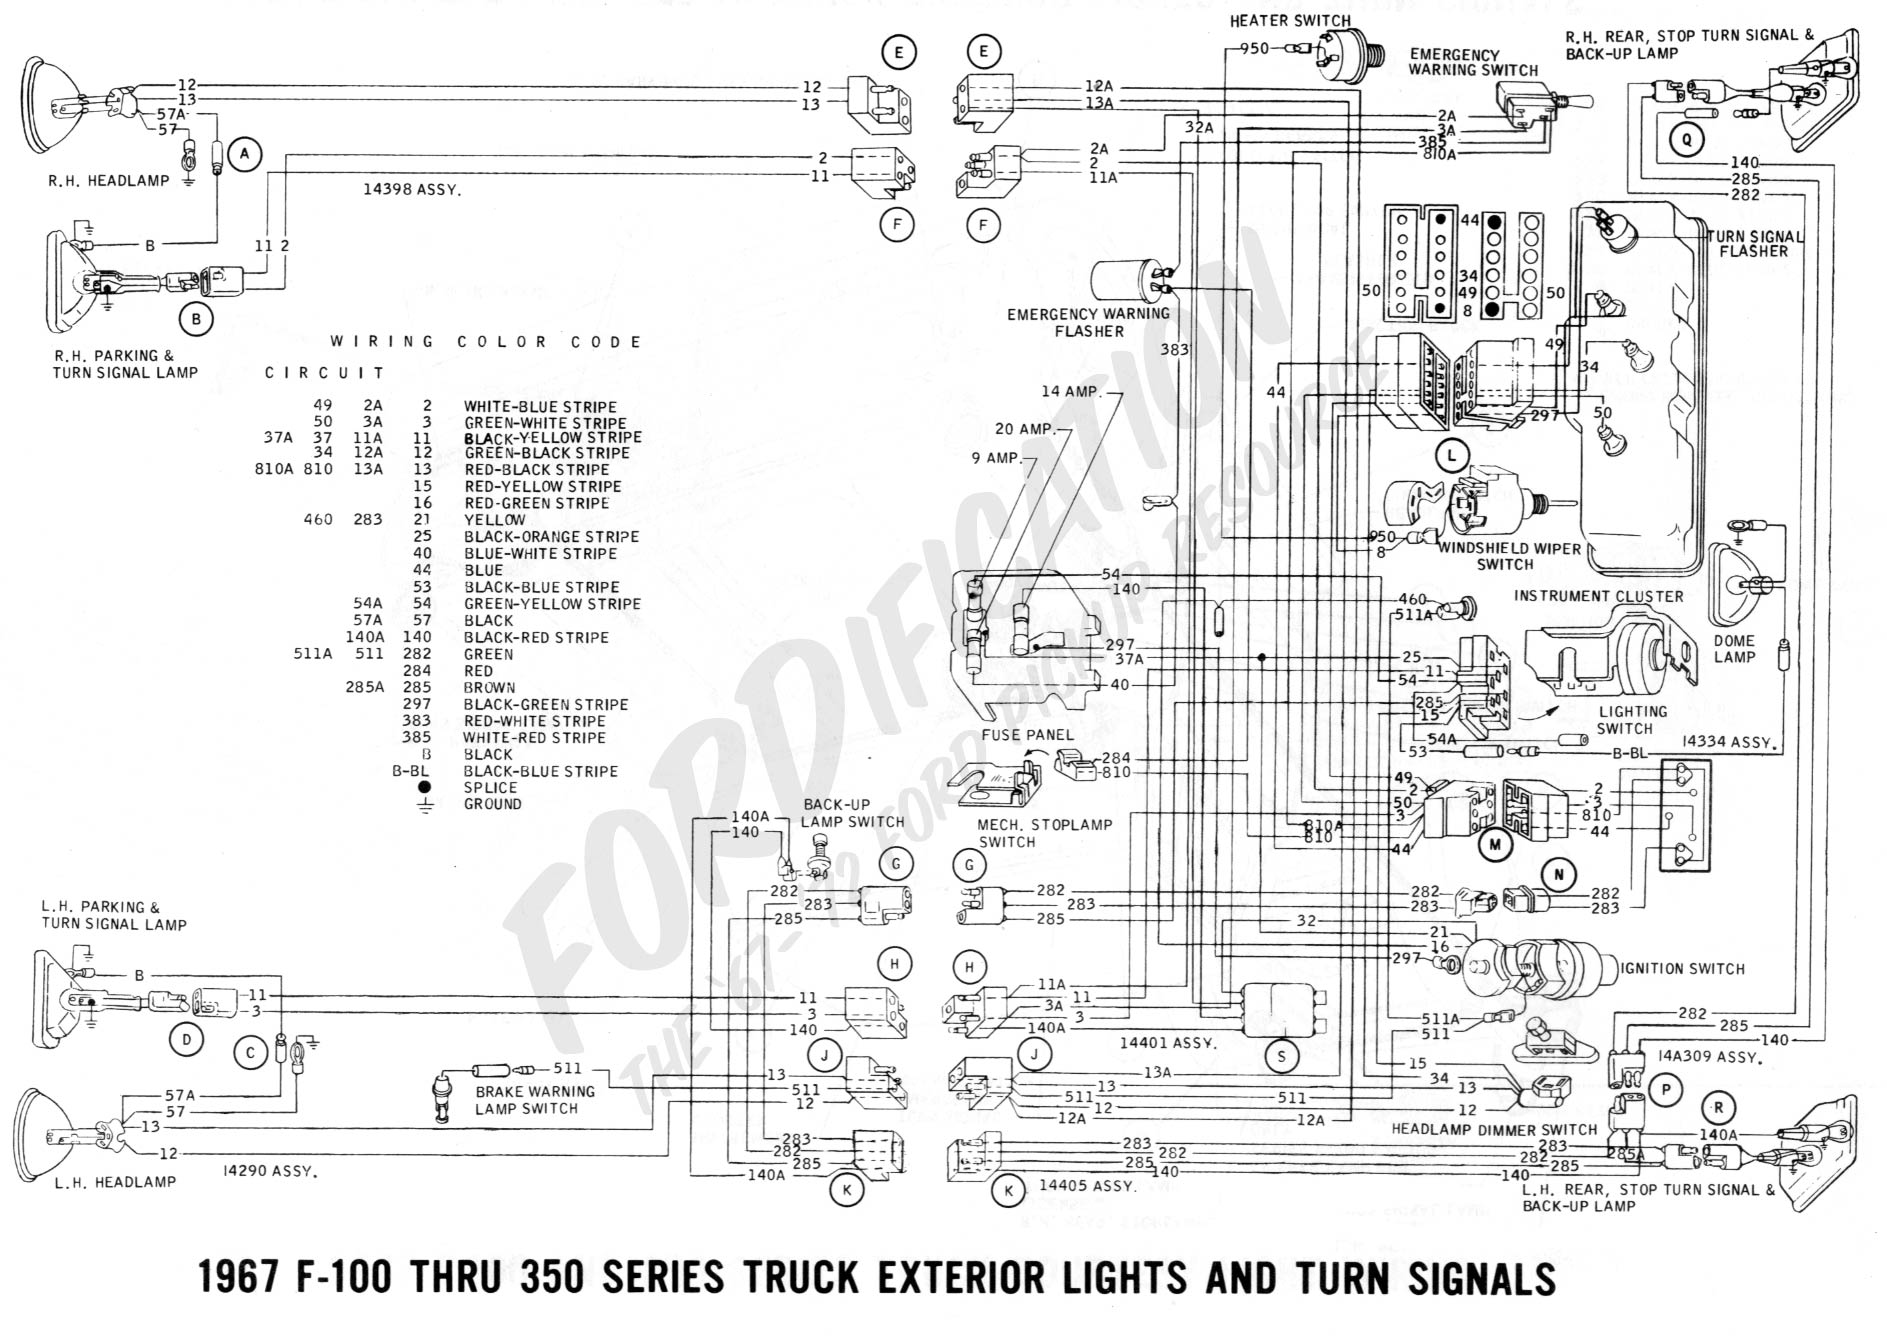 1996 Ford F350 Wiring Diagram Todays 96 Mustang Truck Schematics Data Schema 73 Diesel Engine